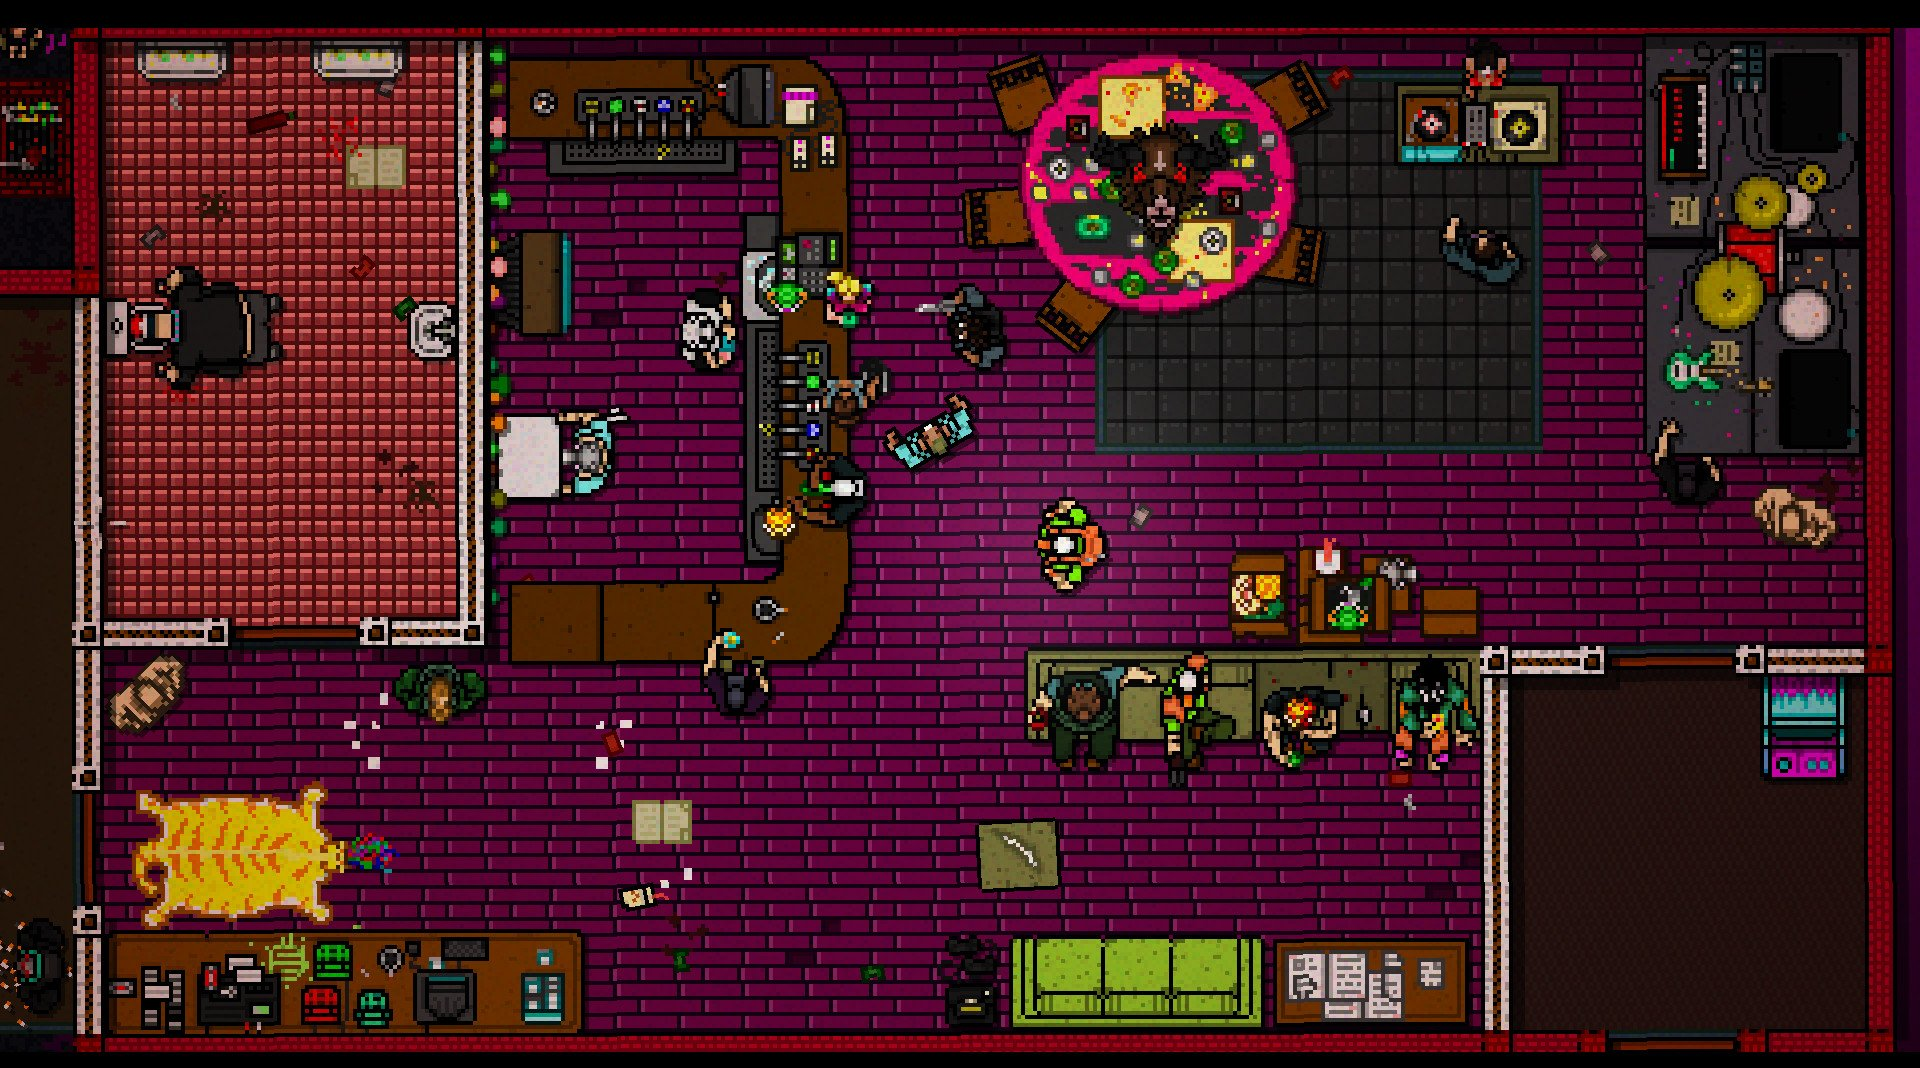 Hotline Miami 1 and 2 are available for free to Twitch Prime members this month